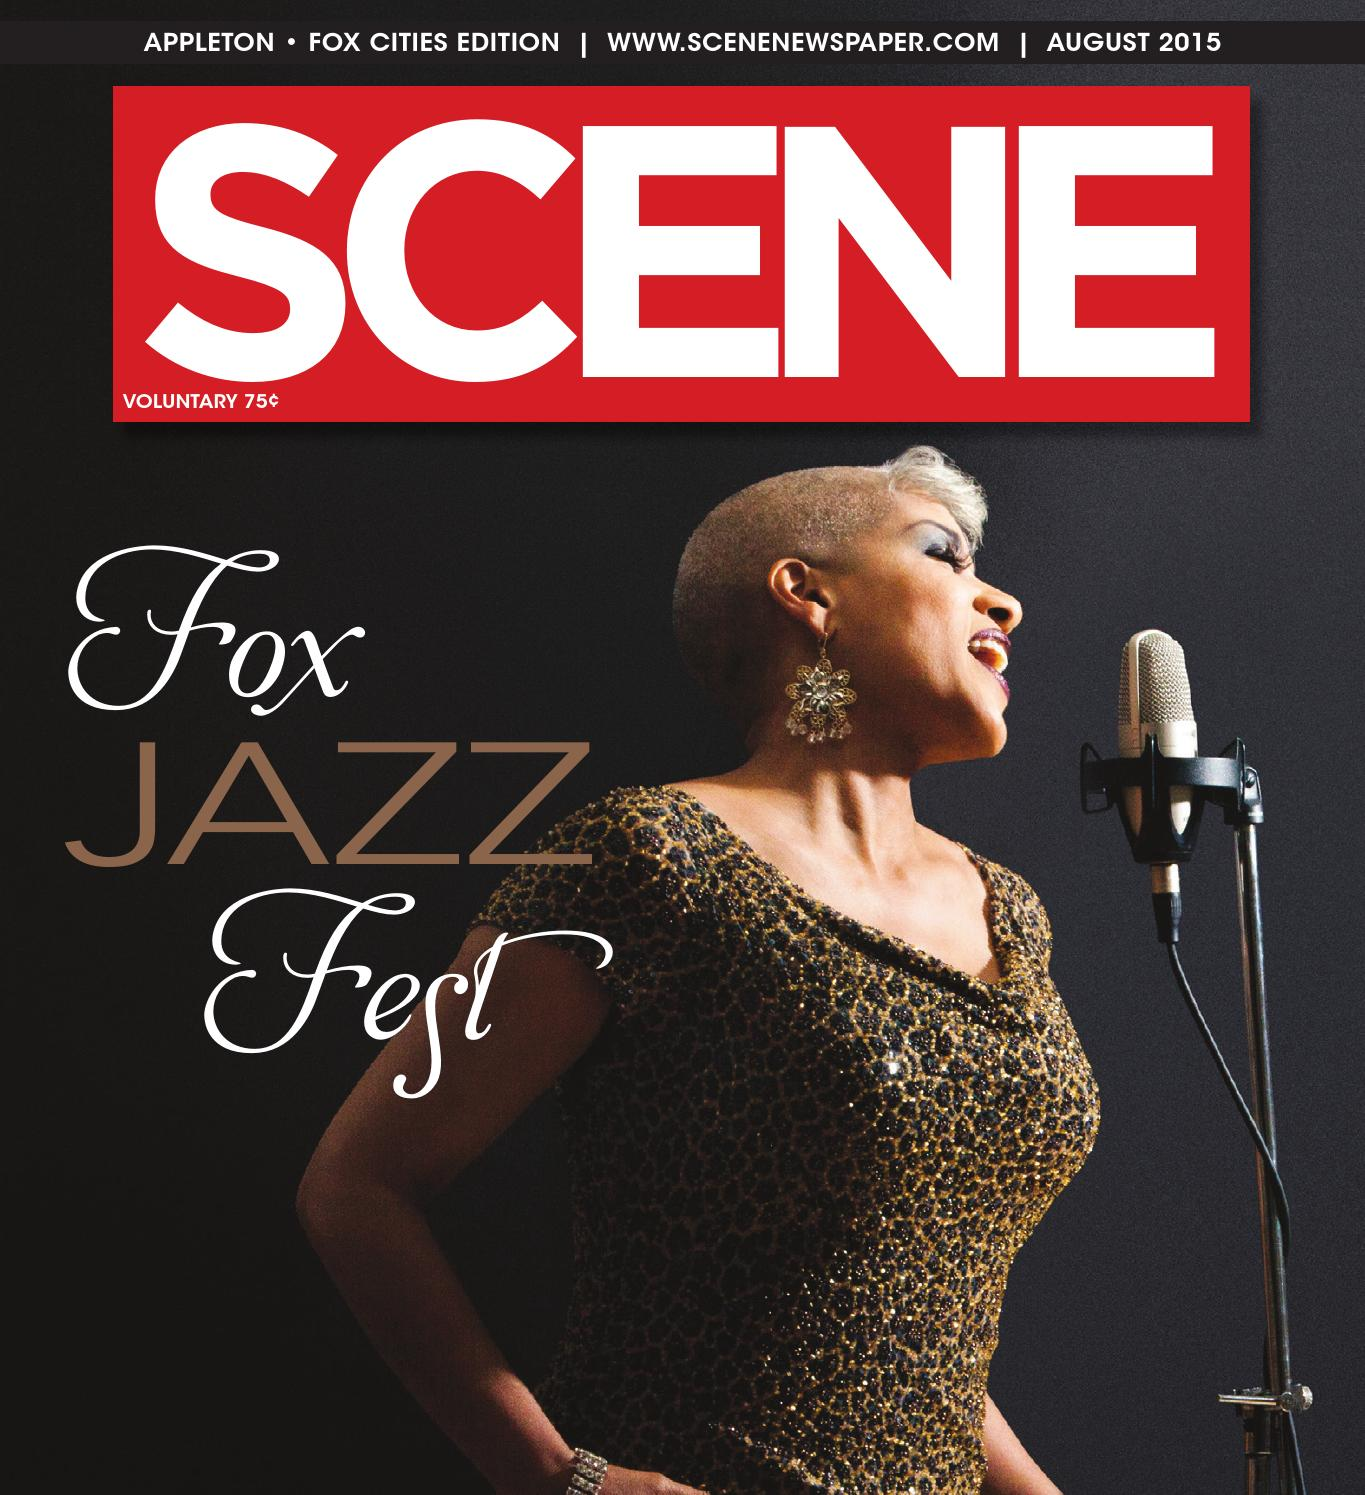 Scene Newspaper - Appleton/Fox Cities - August 2015 by Scene